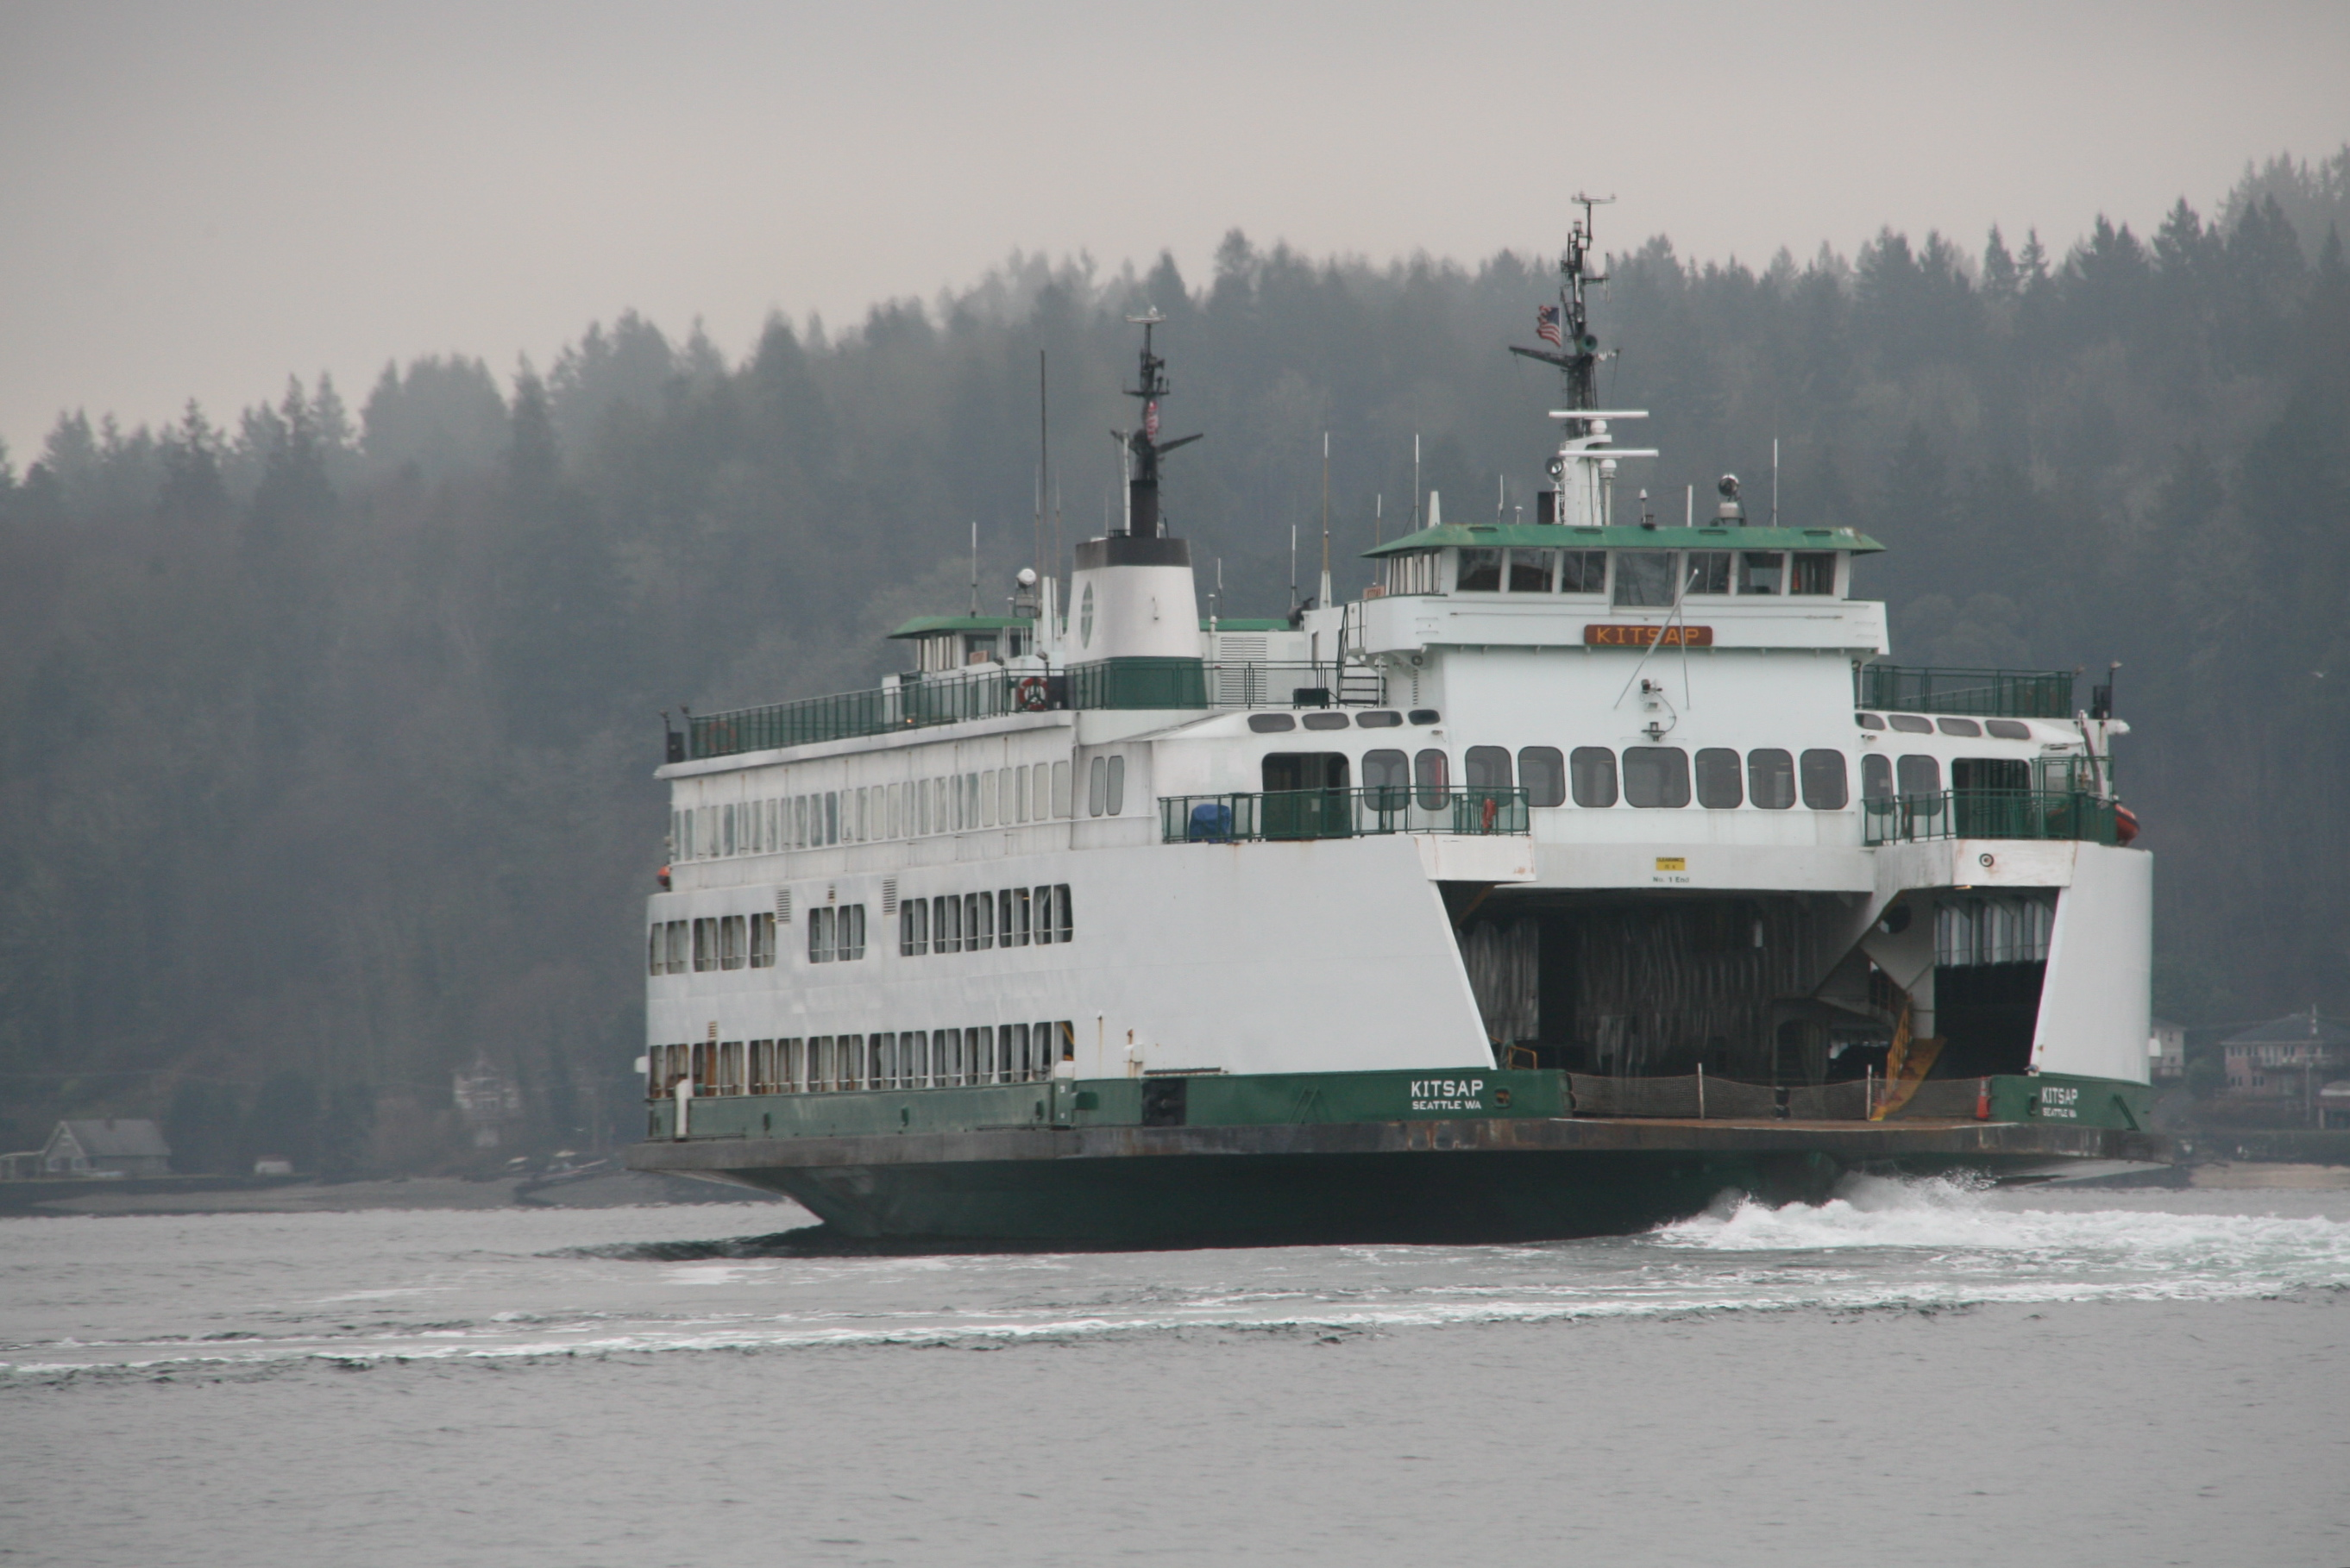 Seattle Humane, Washington State Ferries, and Seattle Mariners Team Up for Triple Play